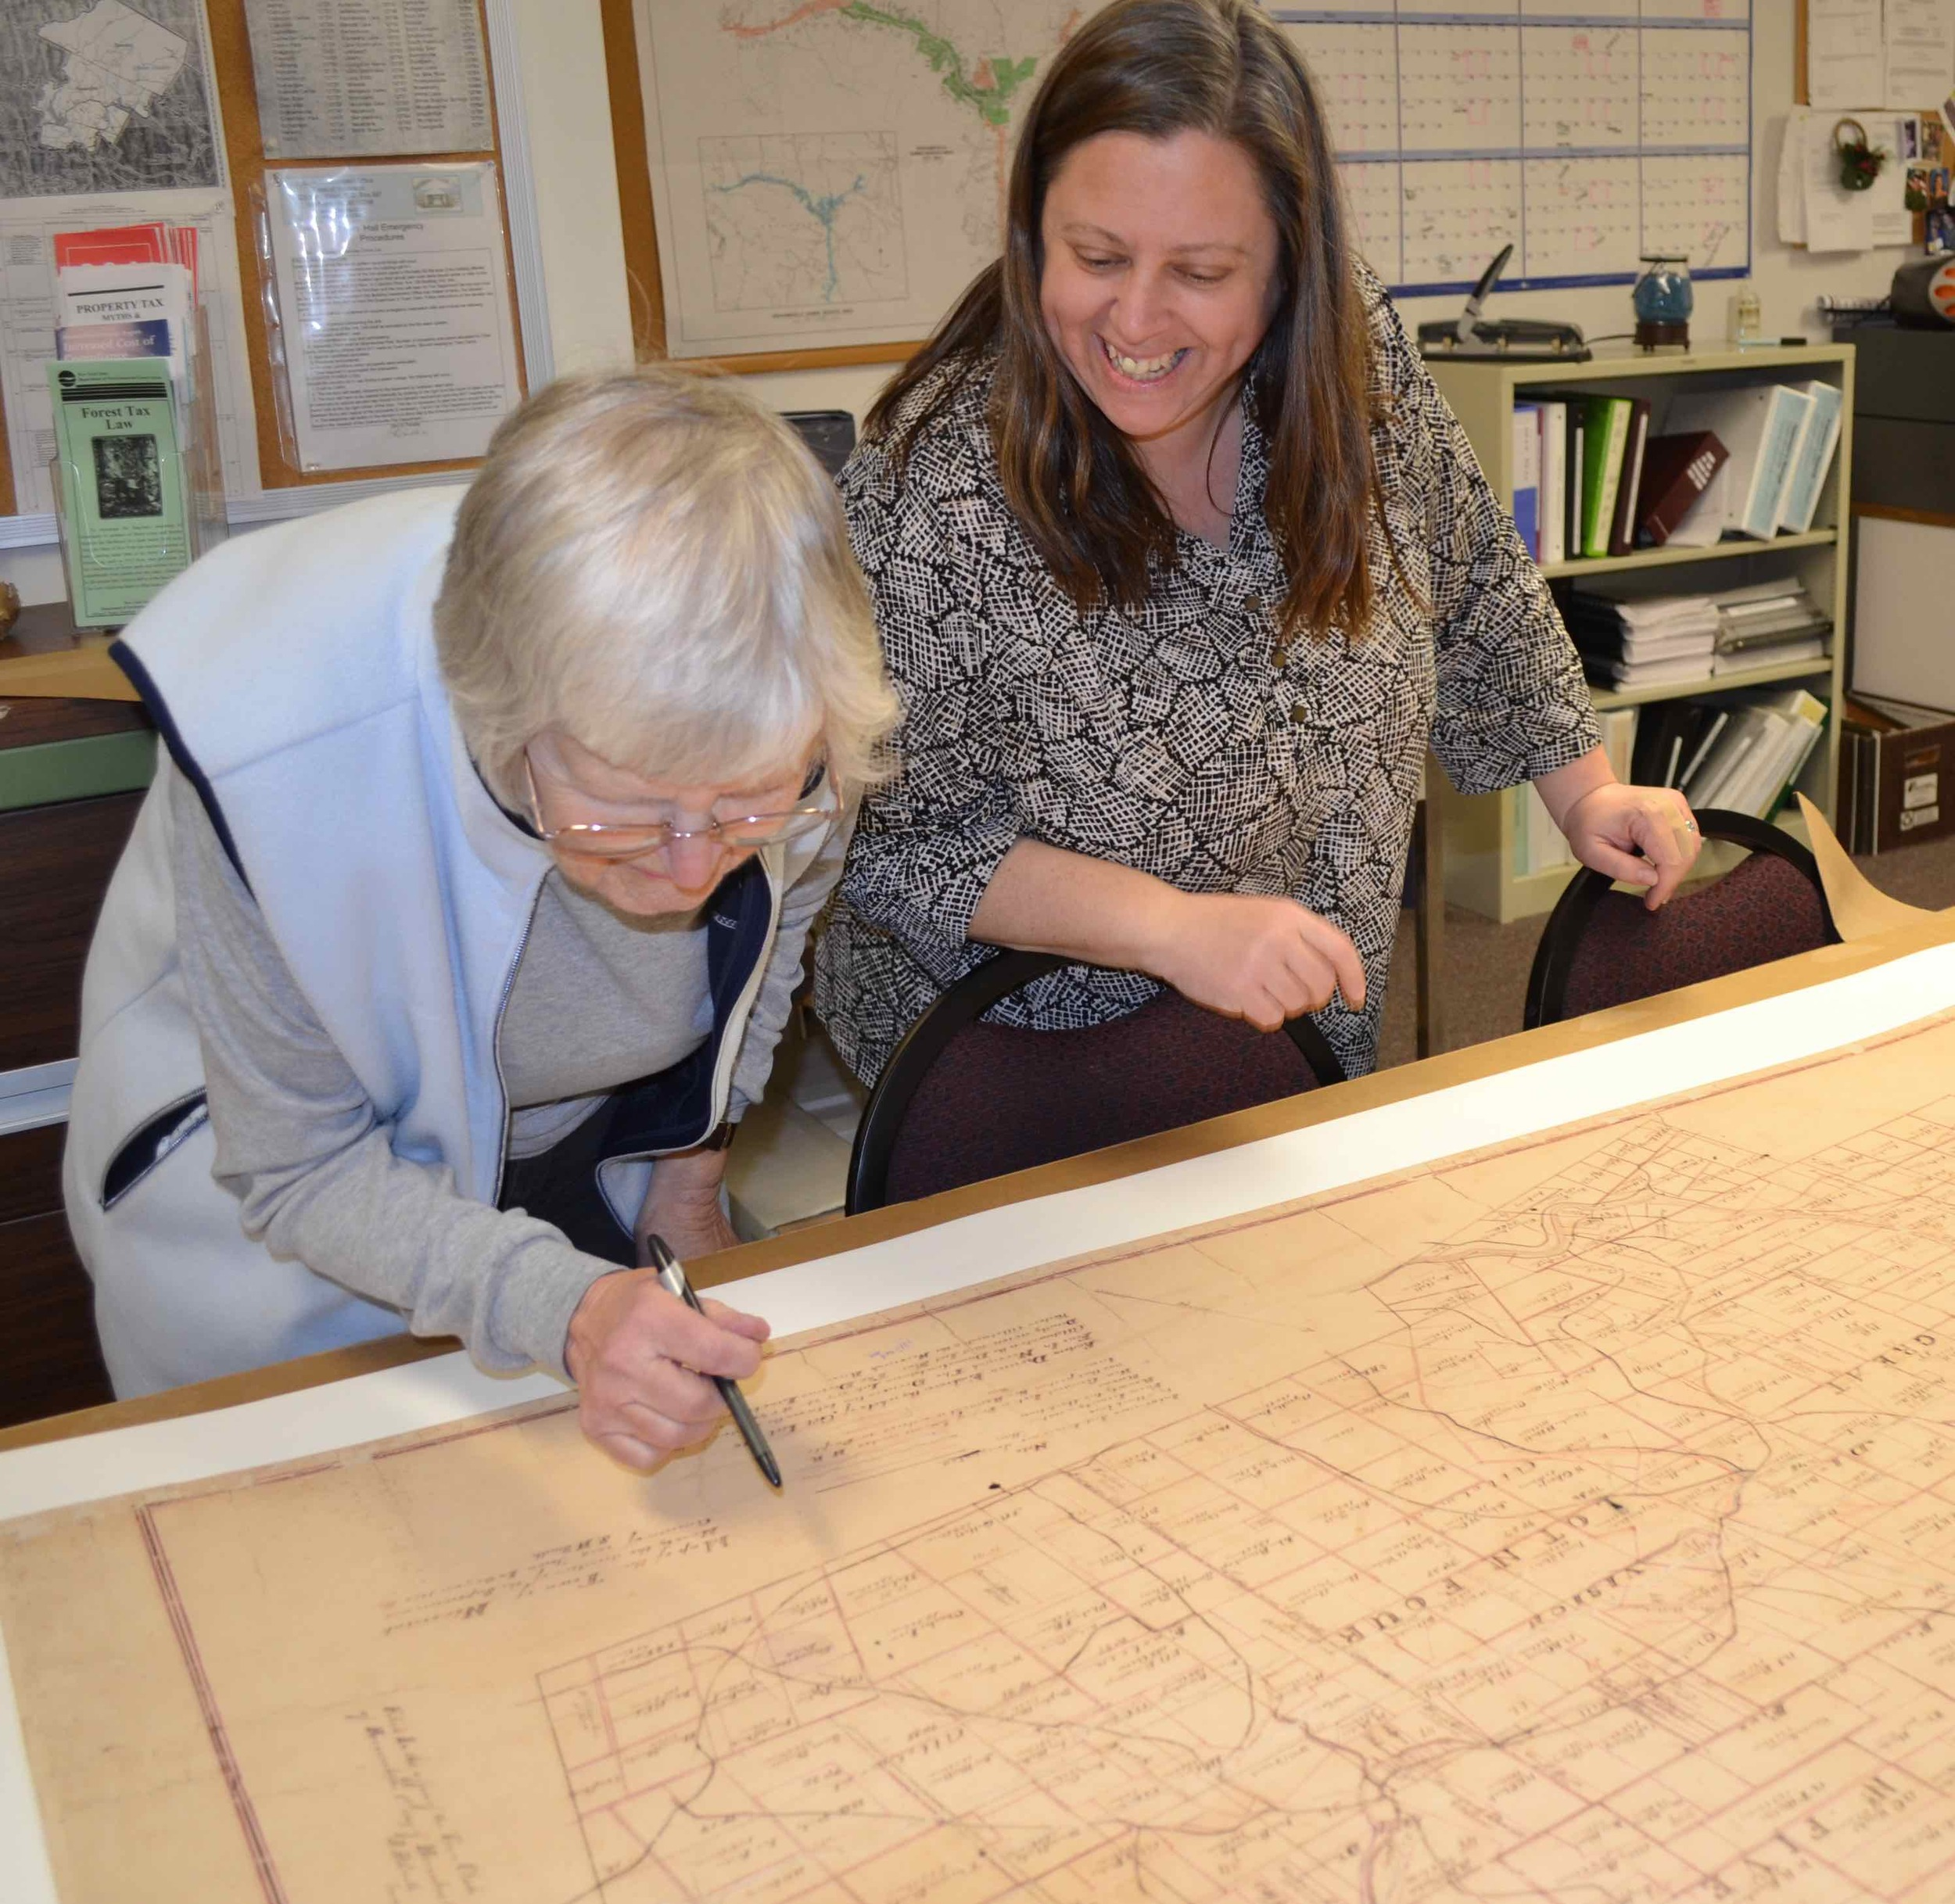 Archival conservation of historic late 19th century Town of Neversink map with land parcels and rivers (SMIP).